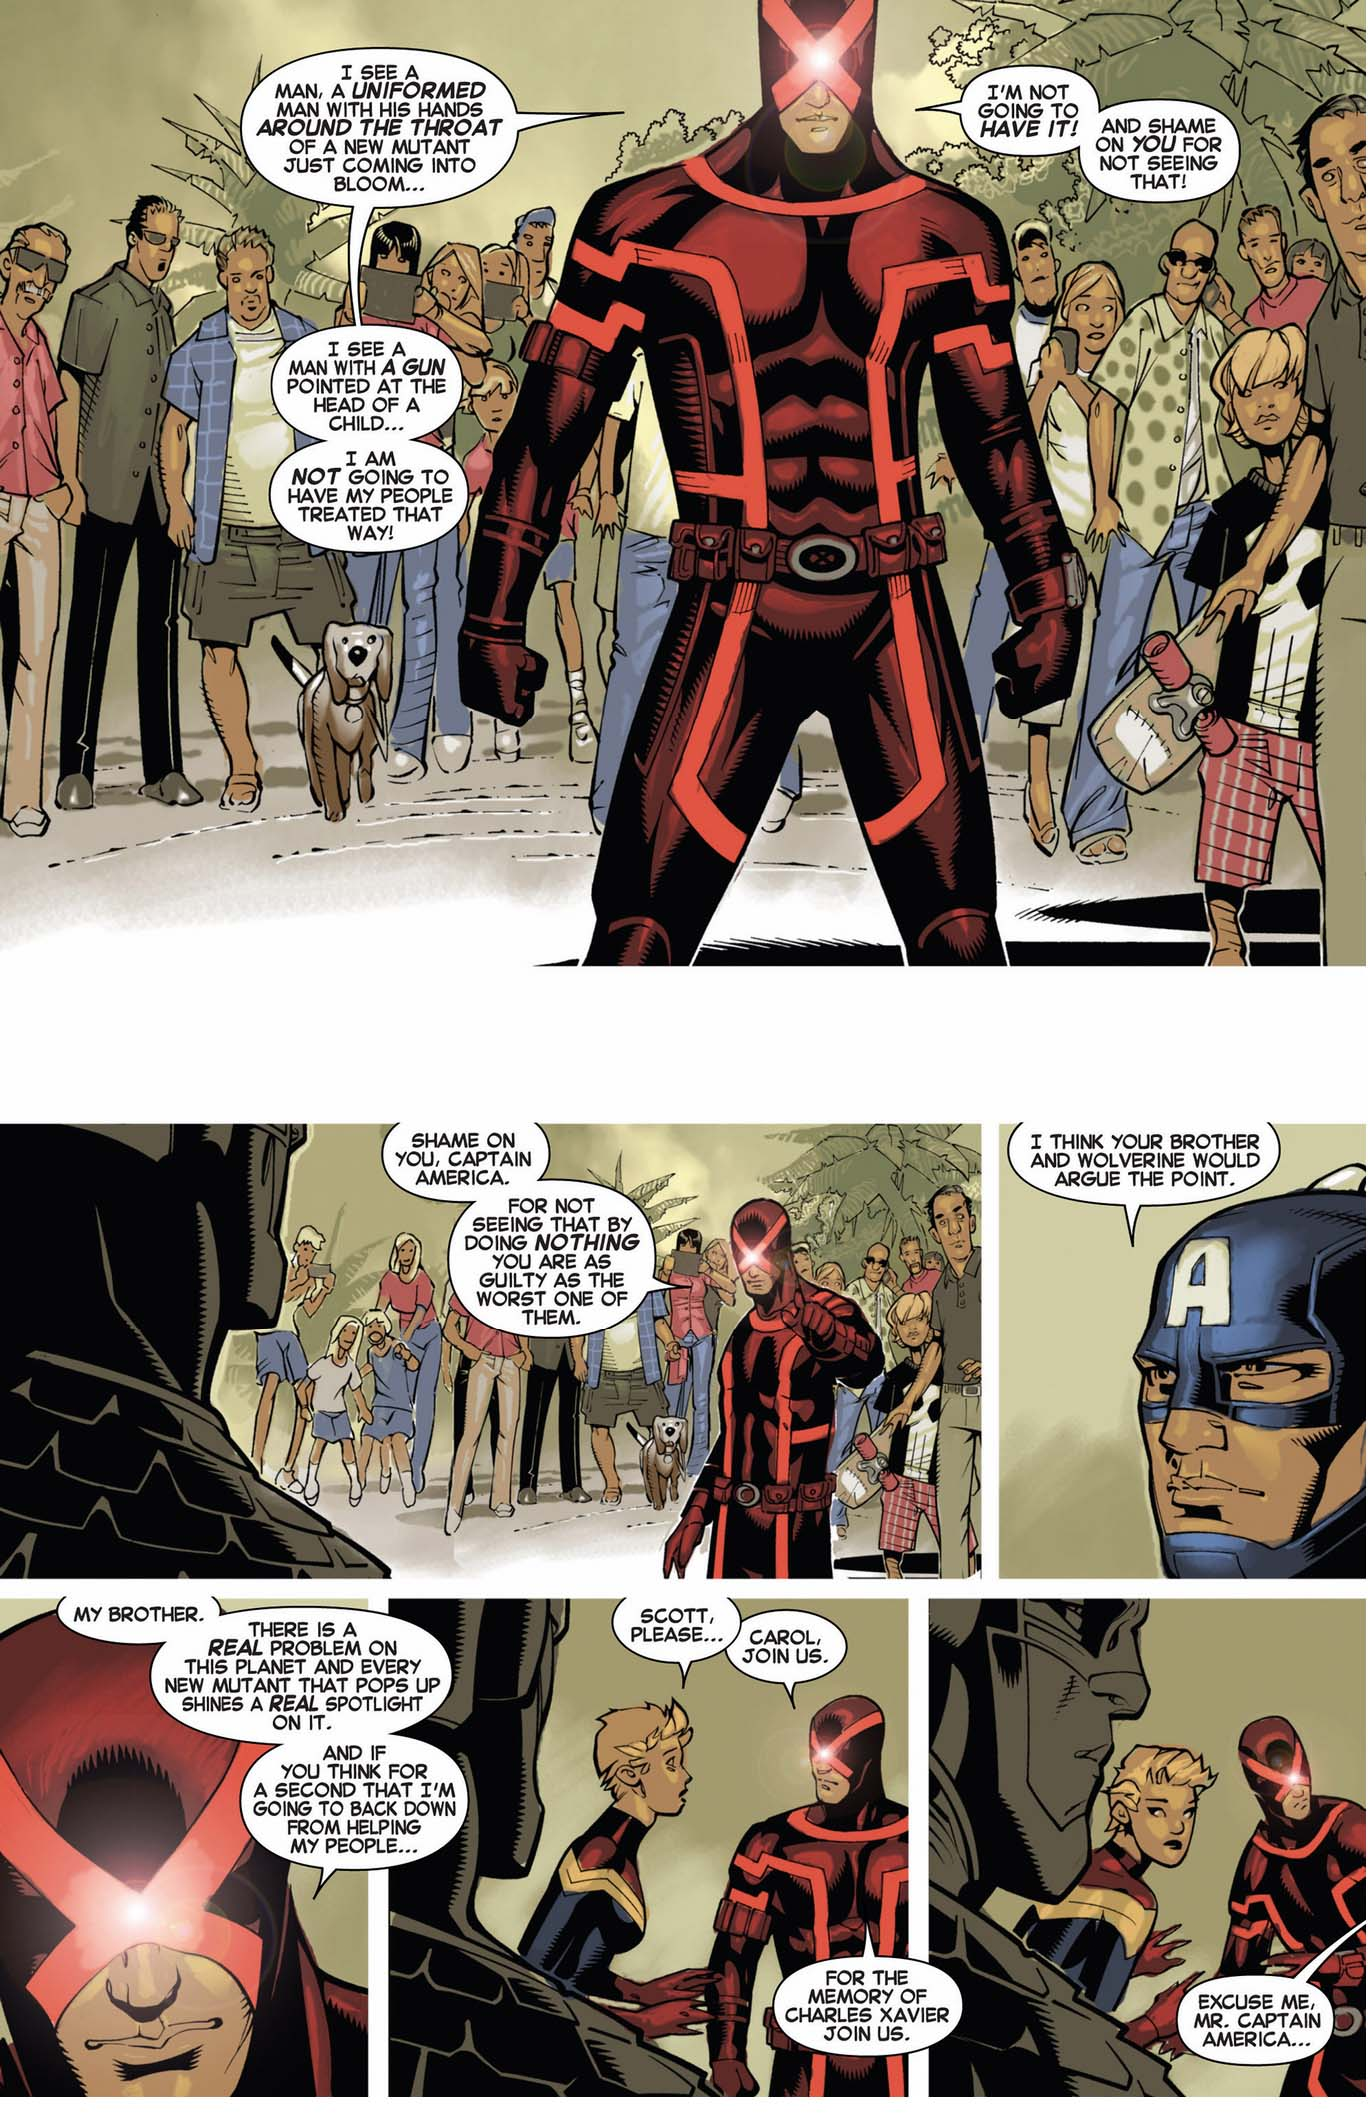 cyclops educating captain america on mutant rights 2